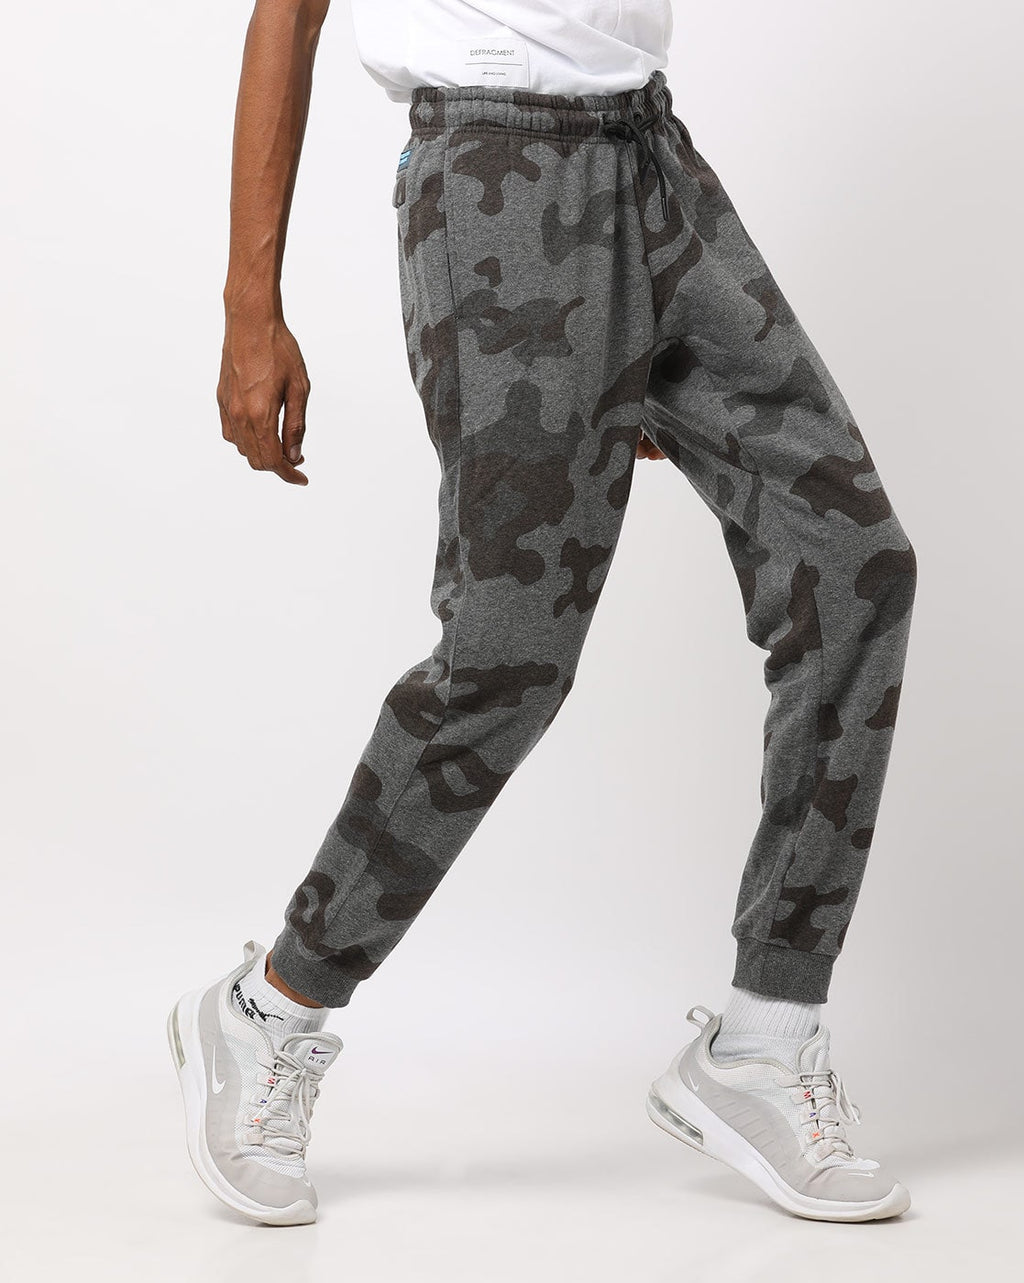 Camouflage Print Joggers with Slip Pockets (AJ)